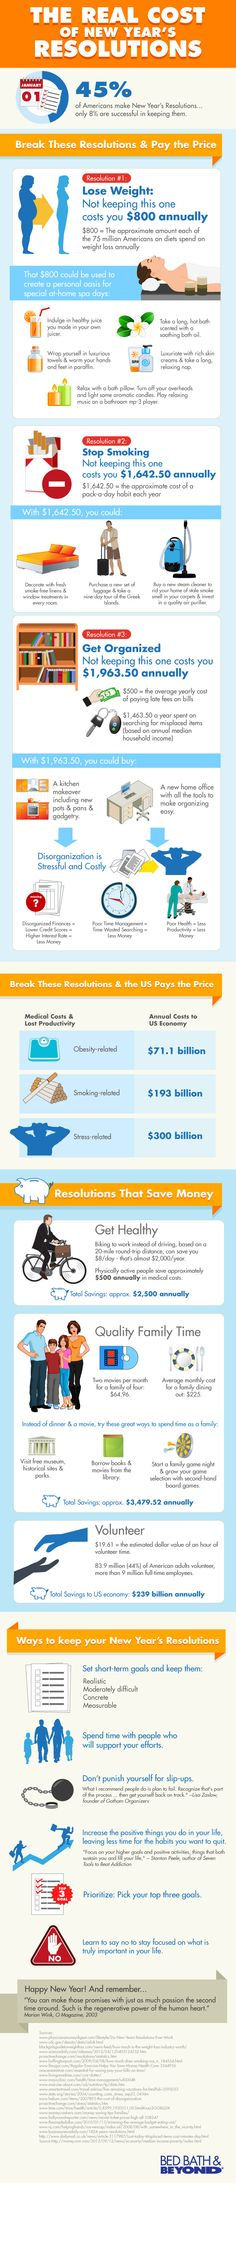 A deeper look into how New Year's Resolutions can cost you hundreds of dollars.